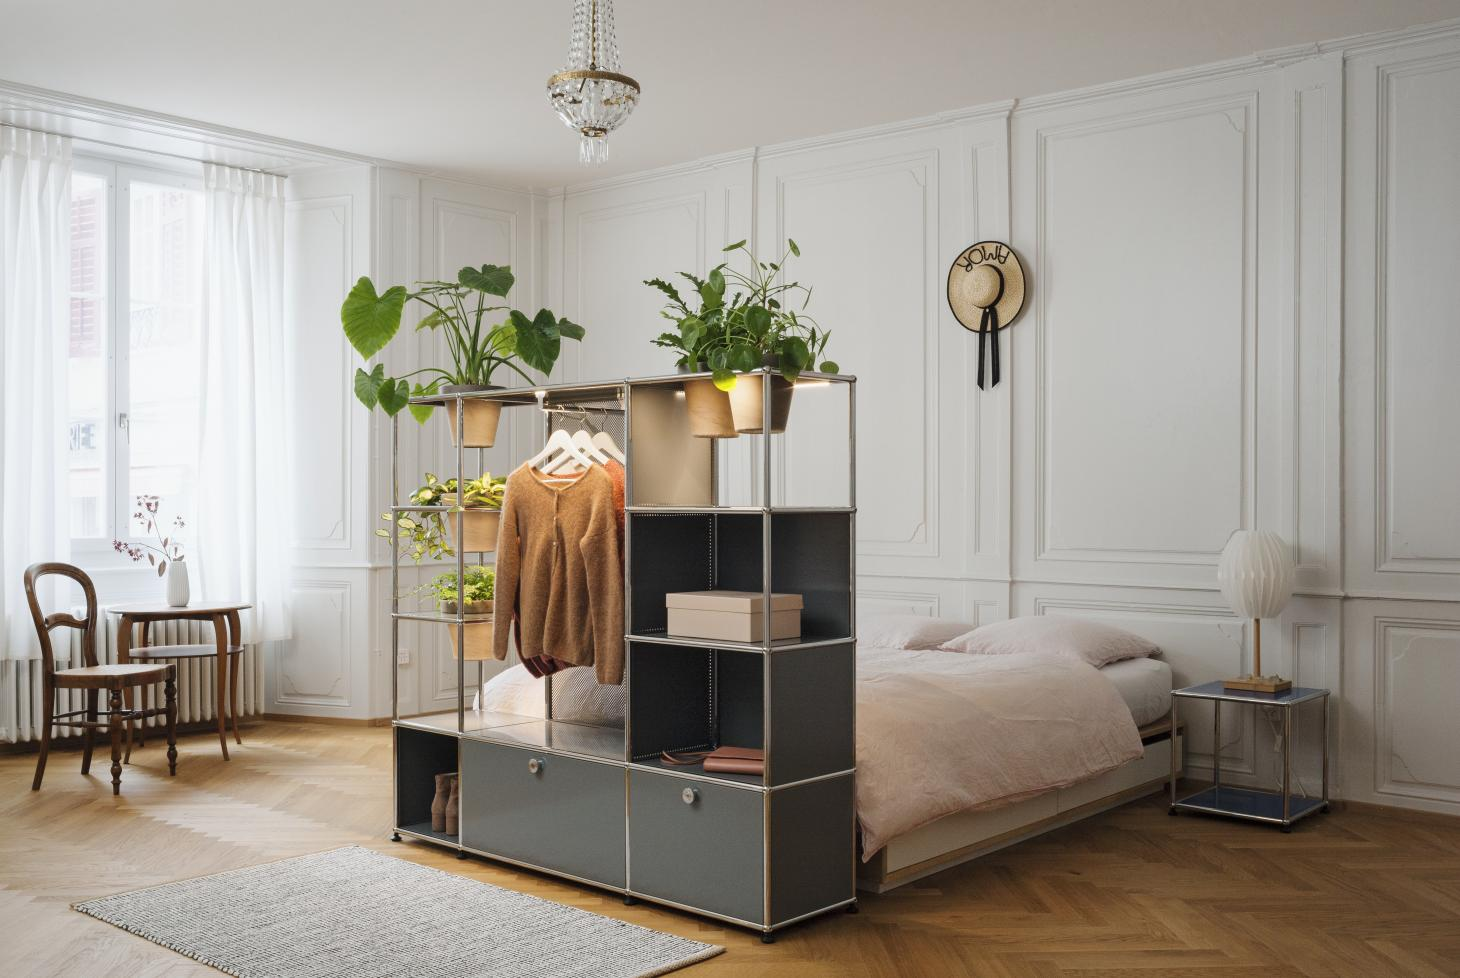 USM Haller bookcase with plant storage in a bedroom with bed and chair and tall ceilings